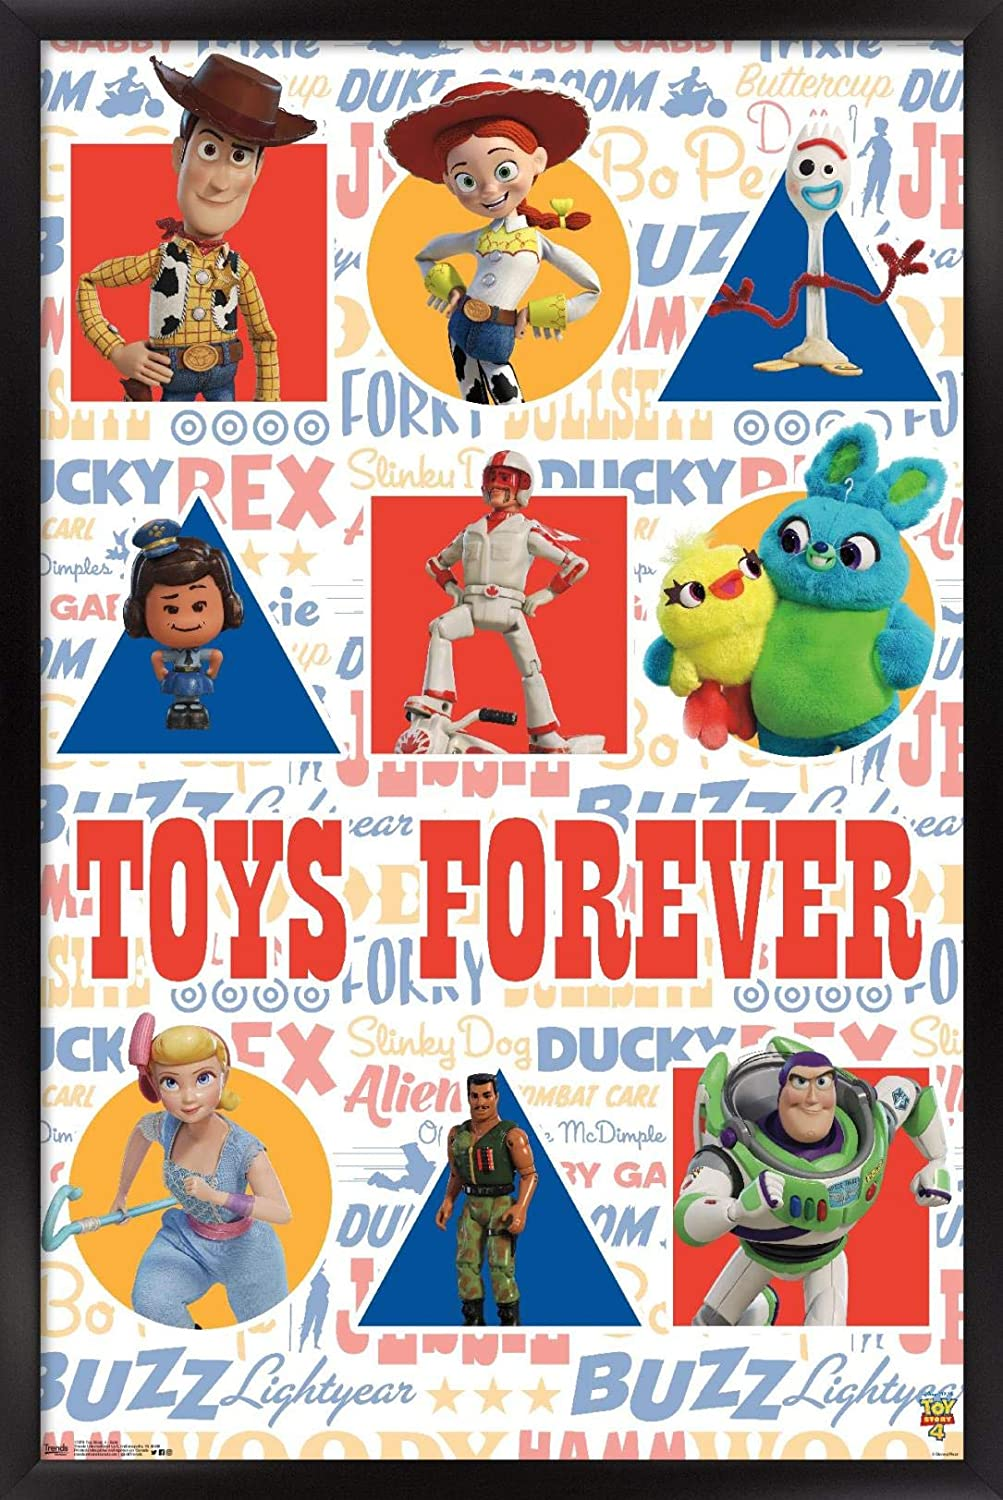 Trends International Disney Pixar Toy Story Poster - Grid Wall Ranking TOP19 Max 64% OFF 4